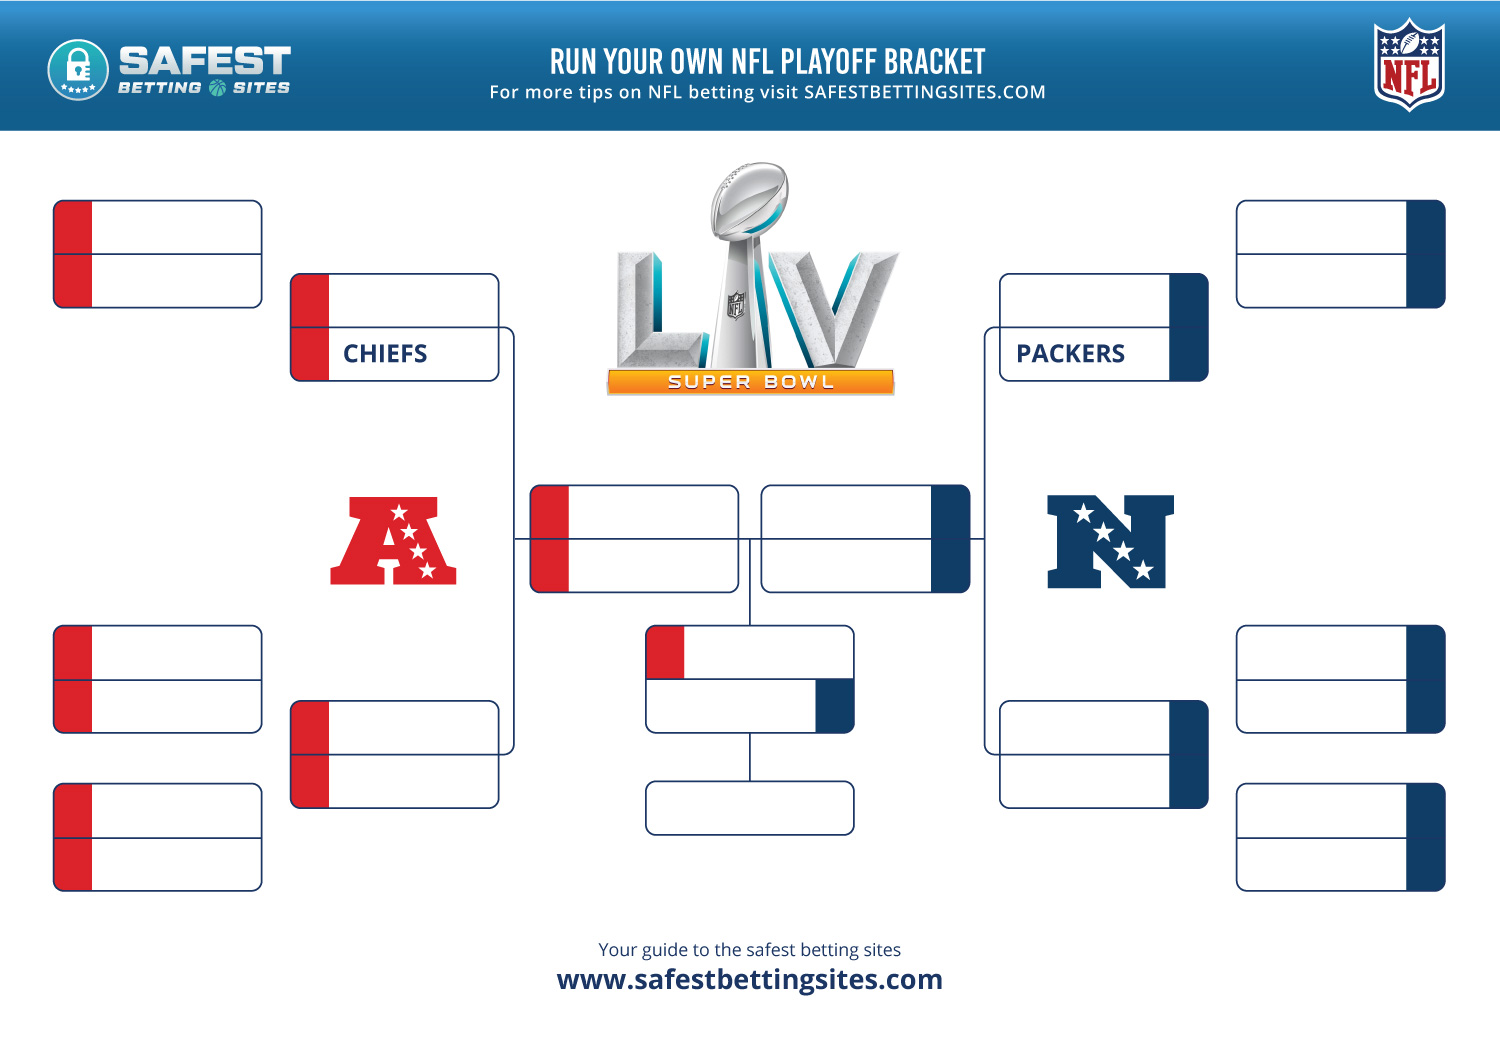 Nfl playoff brackets betting websites vuelta a espana 2021 betting odds